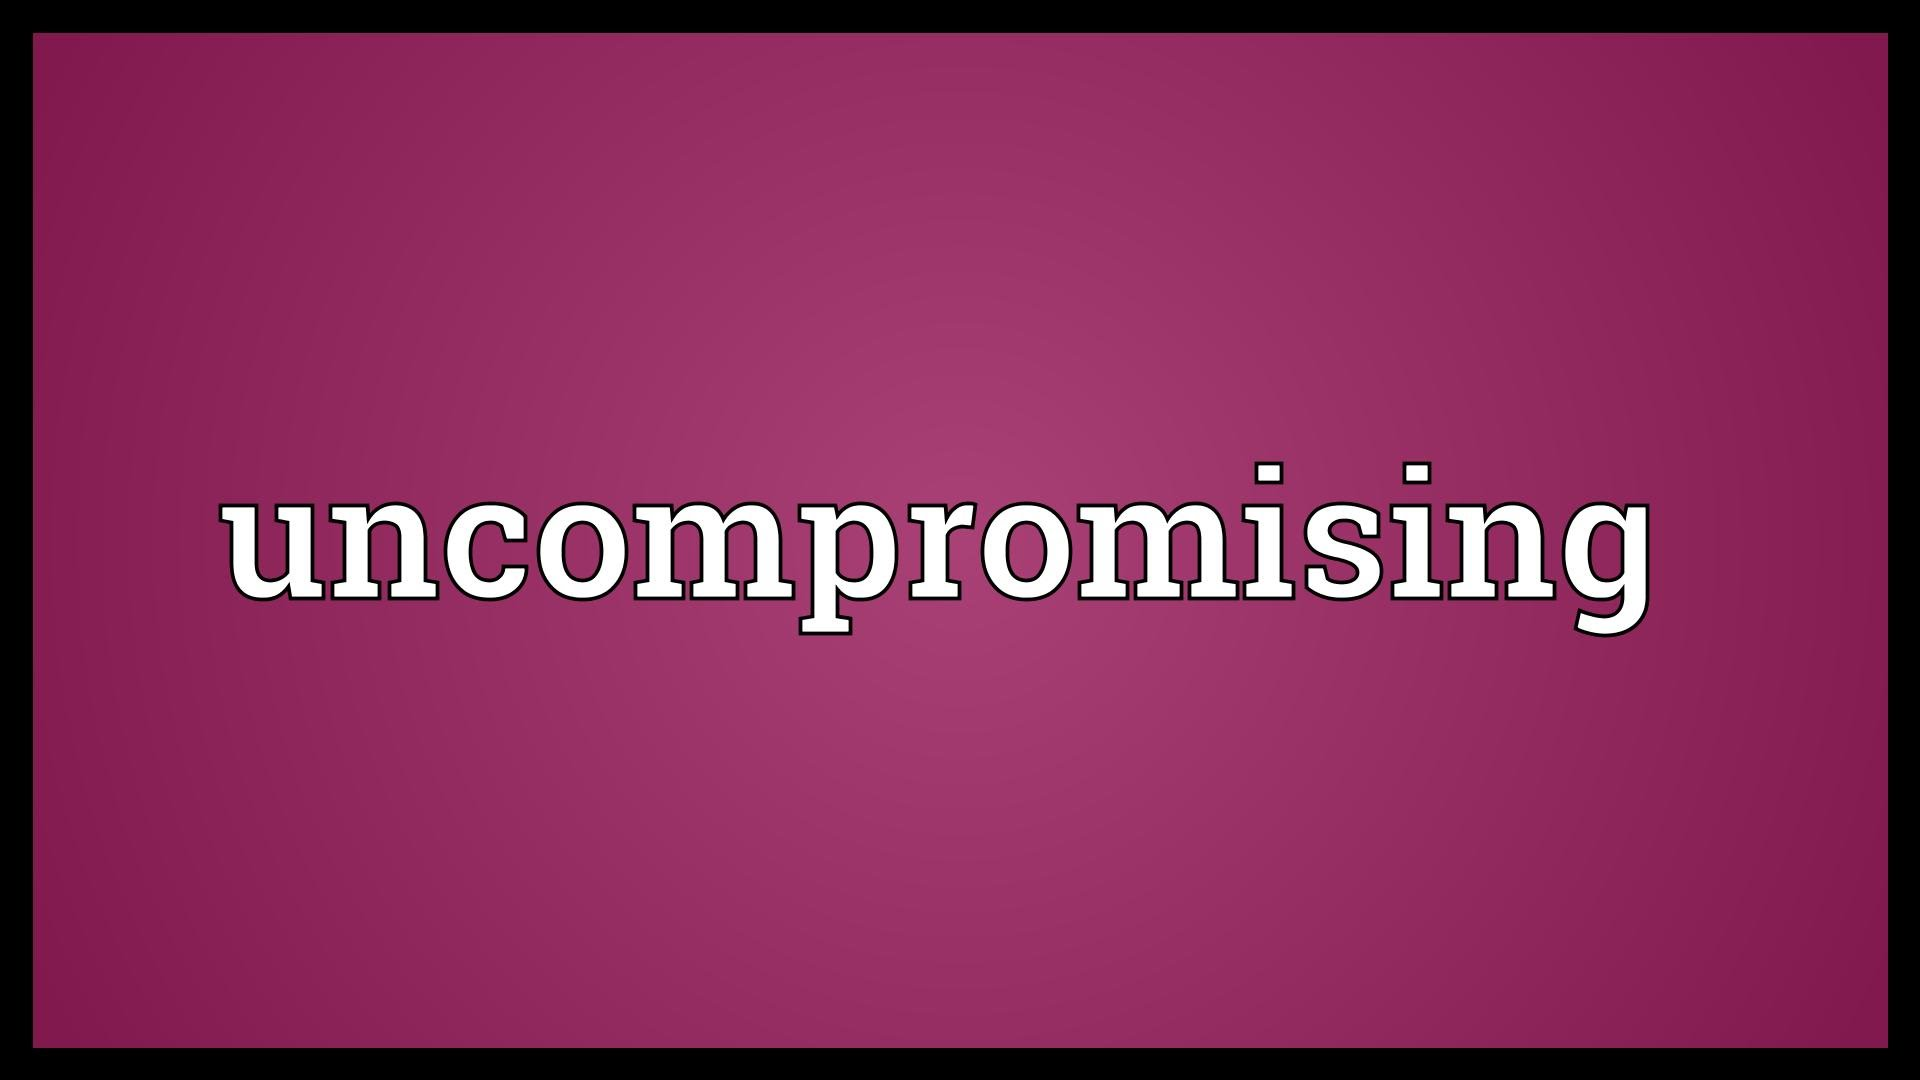 Uncompromising Meaning - YouTube